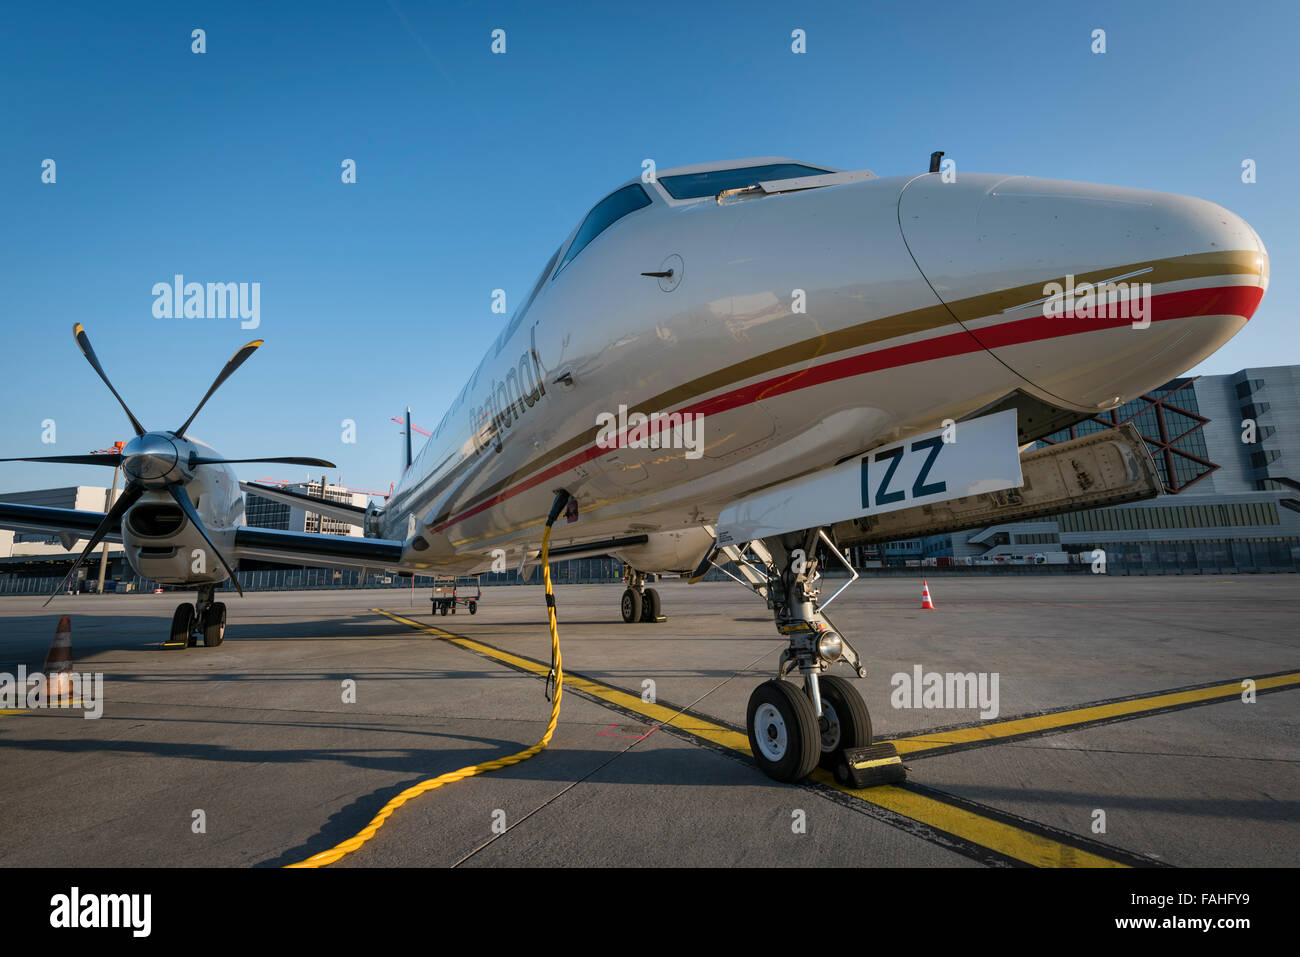 Short-haul business aircraft of Ethiad airline parked at Zurich international airport - Stock Image